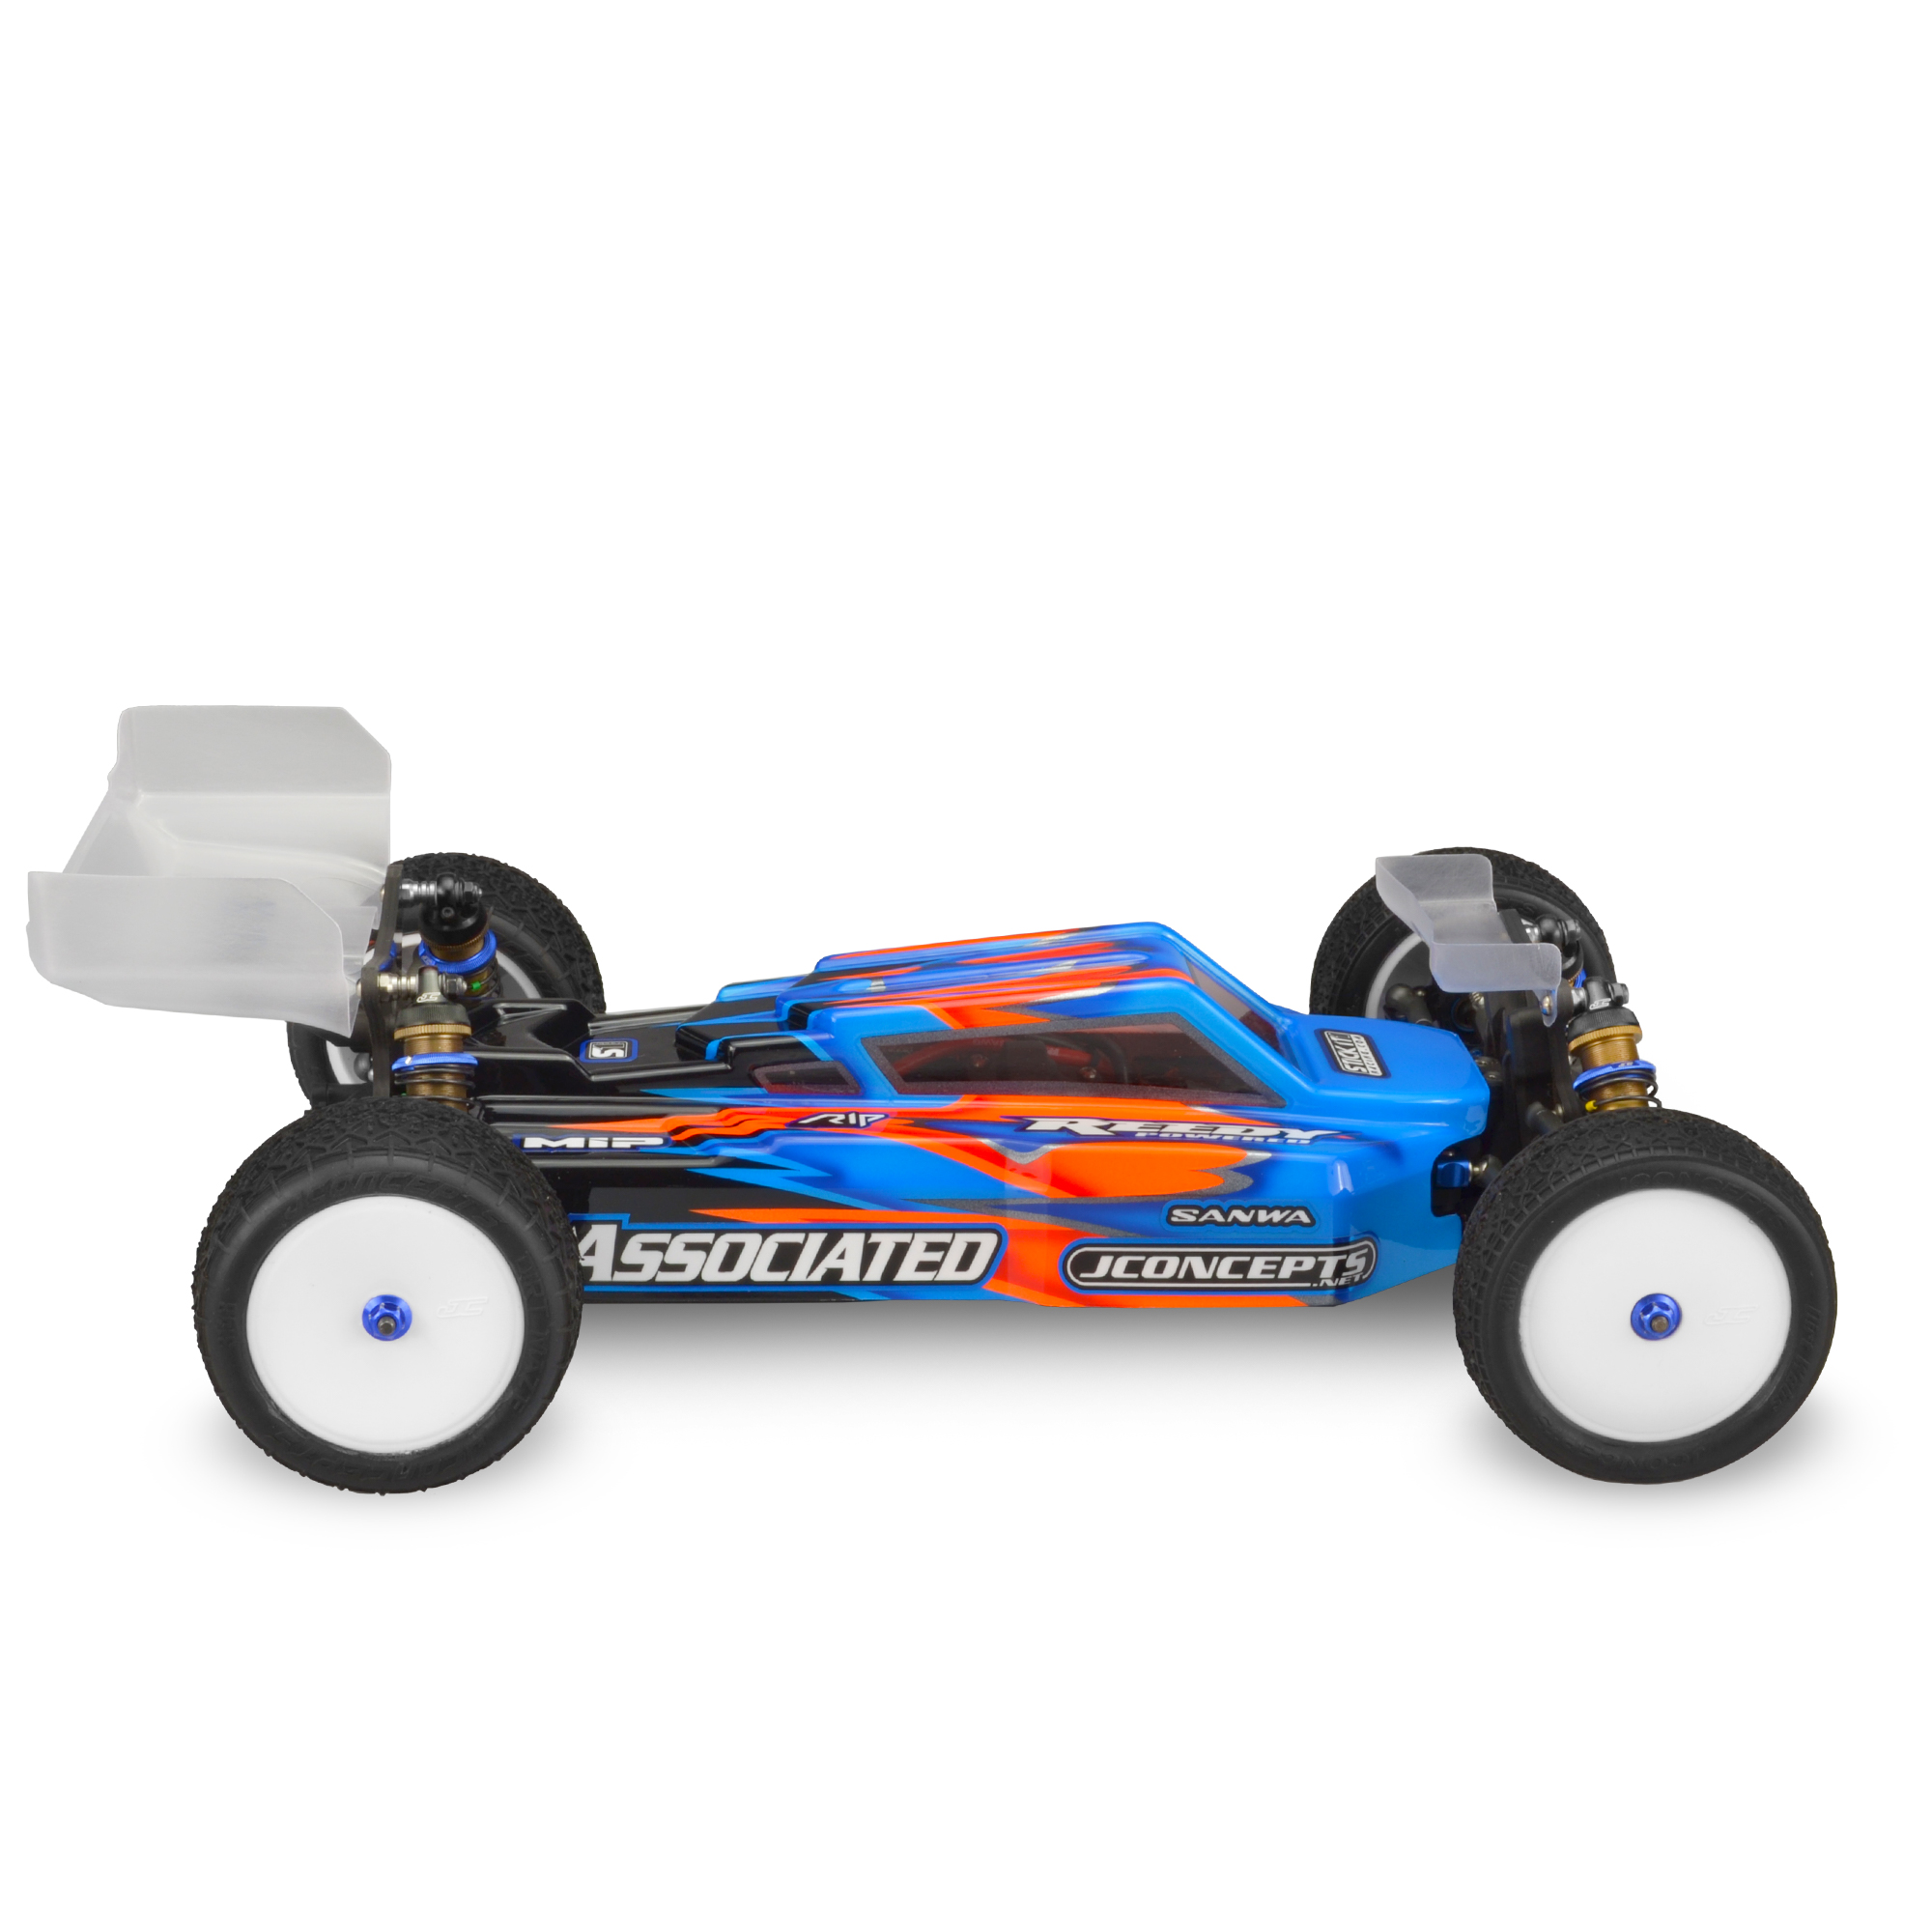 aggressive look with included details which remain crucial to performance The F2 body is a drop fit for the popular Team Associated B64